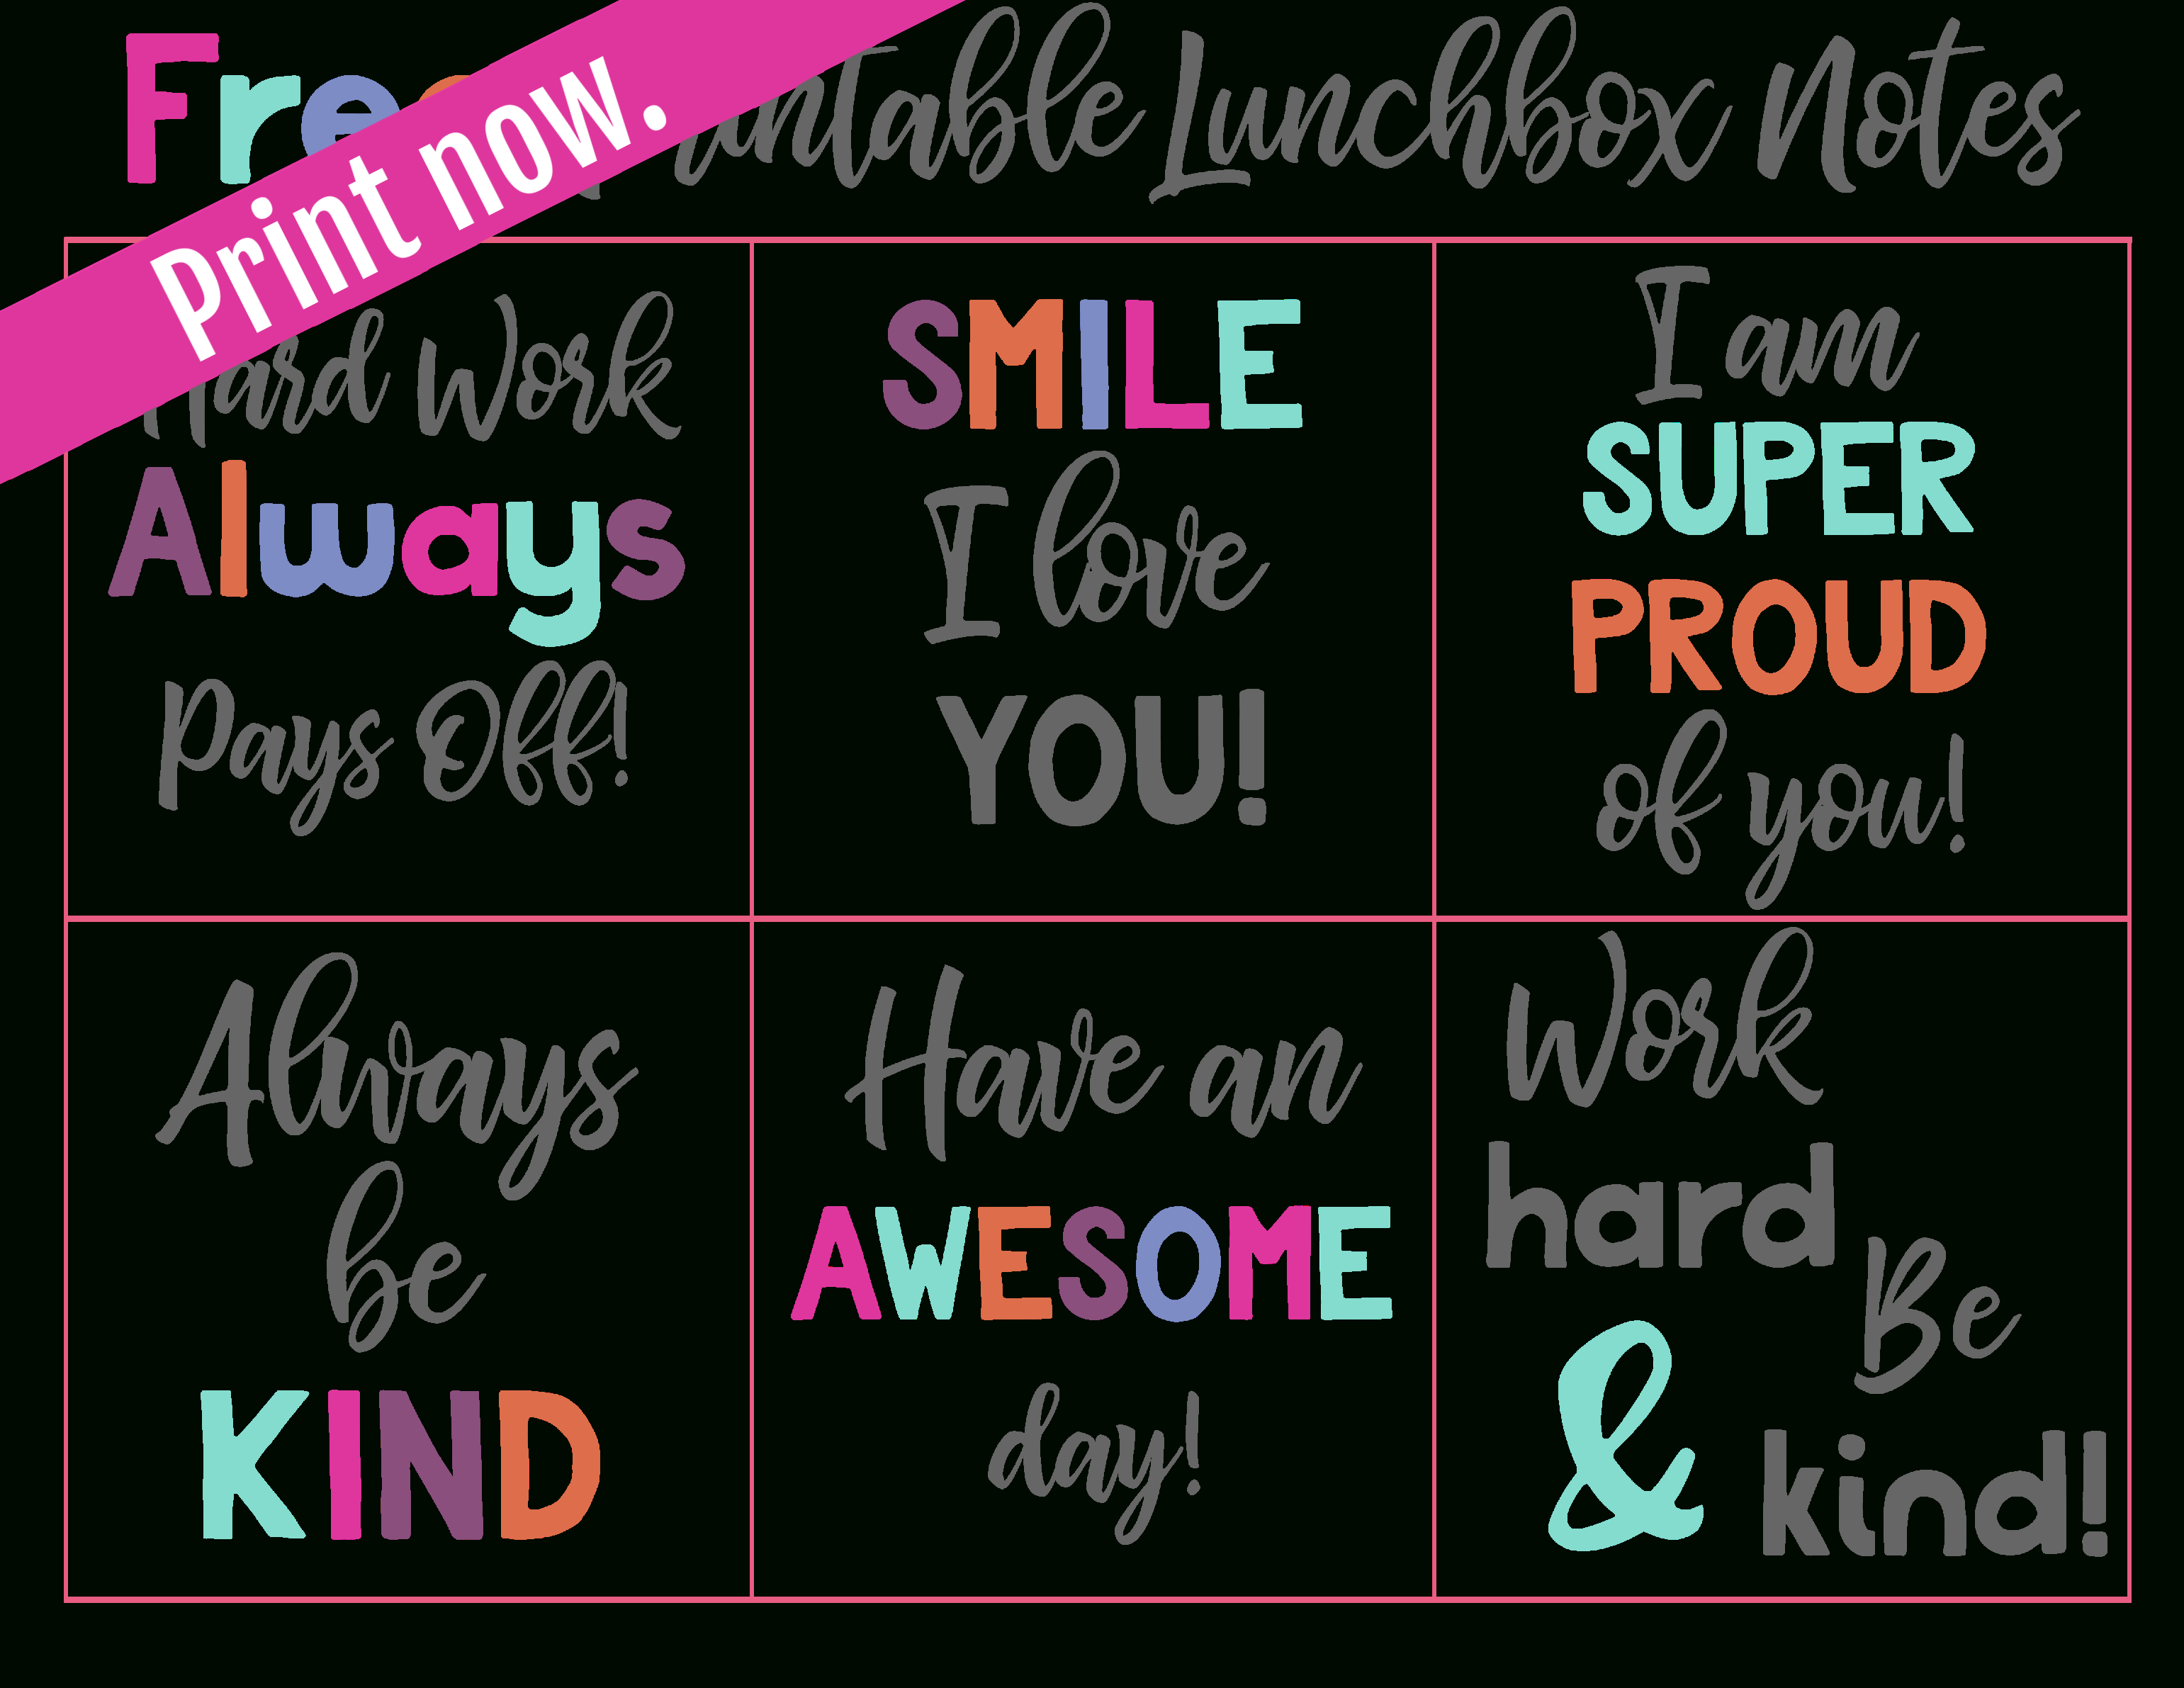 Free Printable Lunchbox Notes | Simply Being Mommy | Free Printables - Free Printable Lunchbox Notes